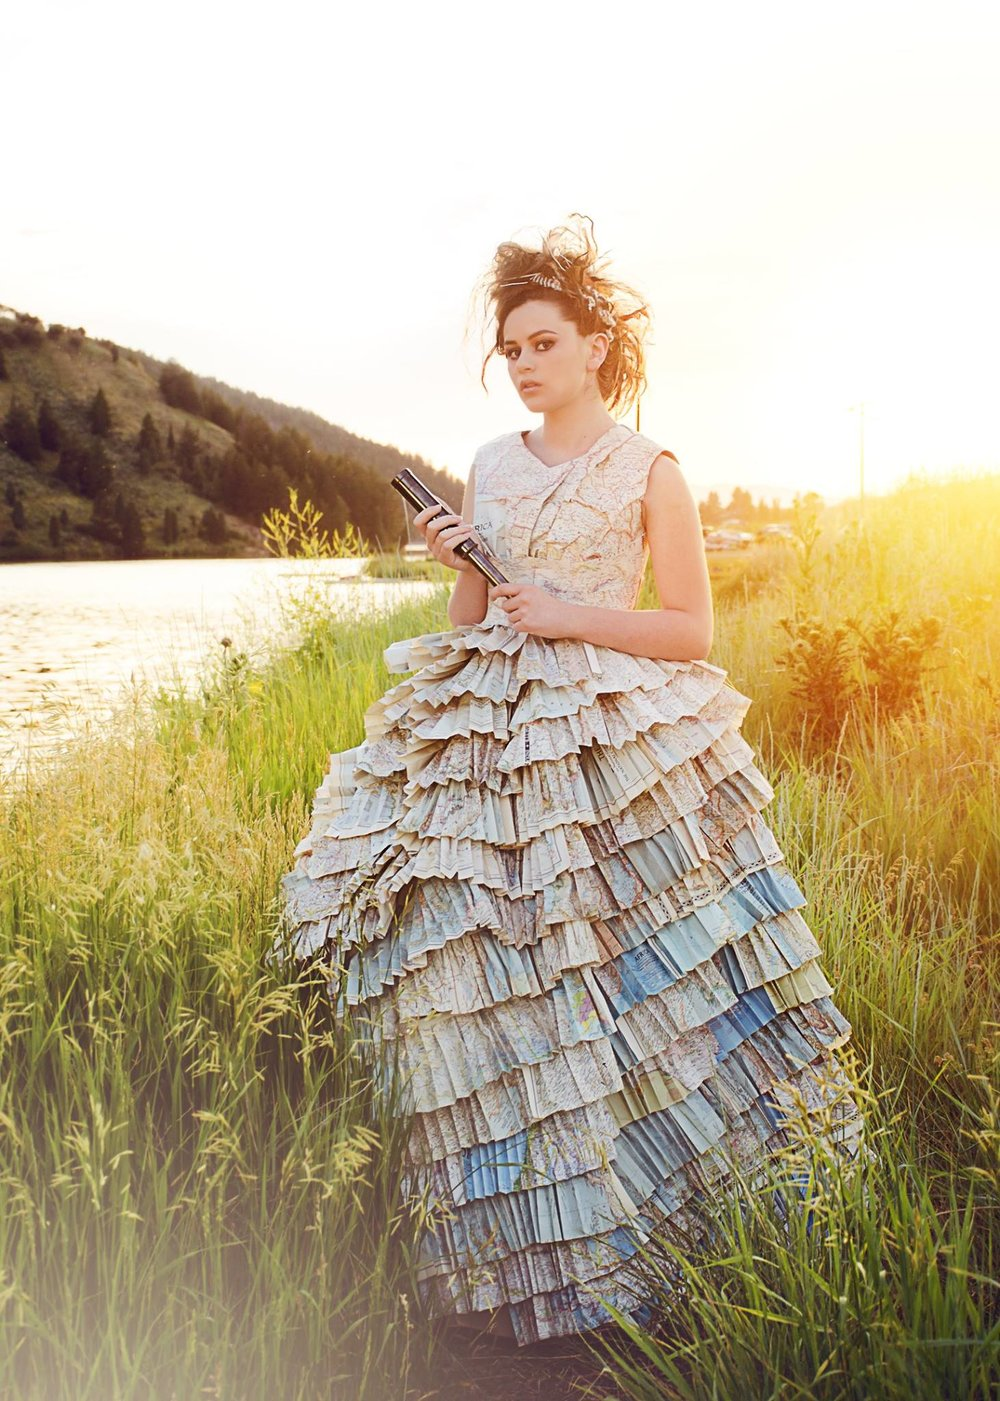 Dress made from upcycled National Geographic maps. Photo by Amanda Conley, hair and makeup by Riley Dixon.